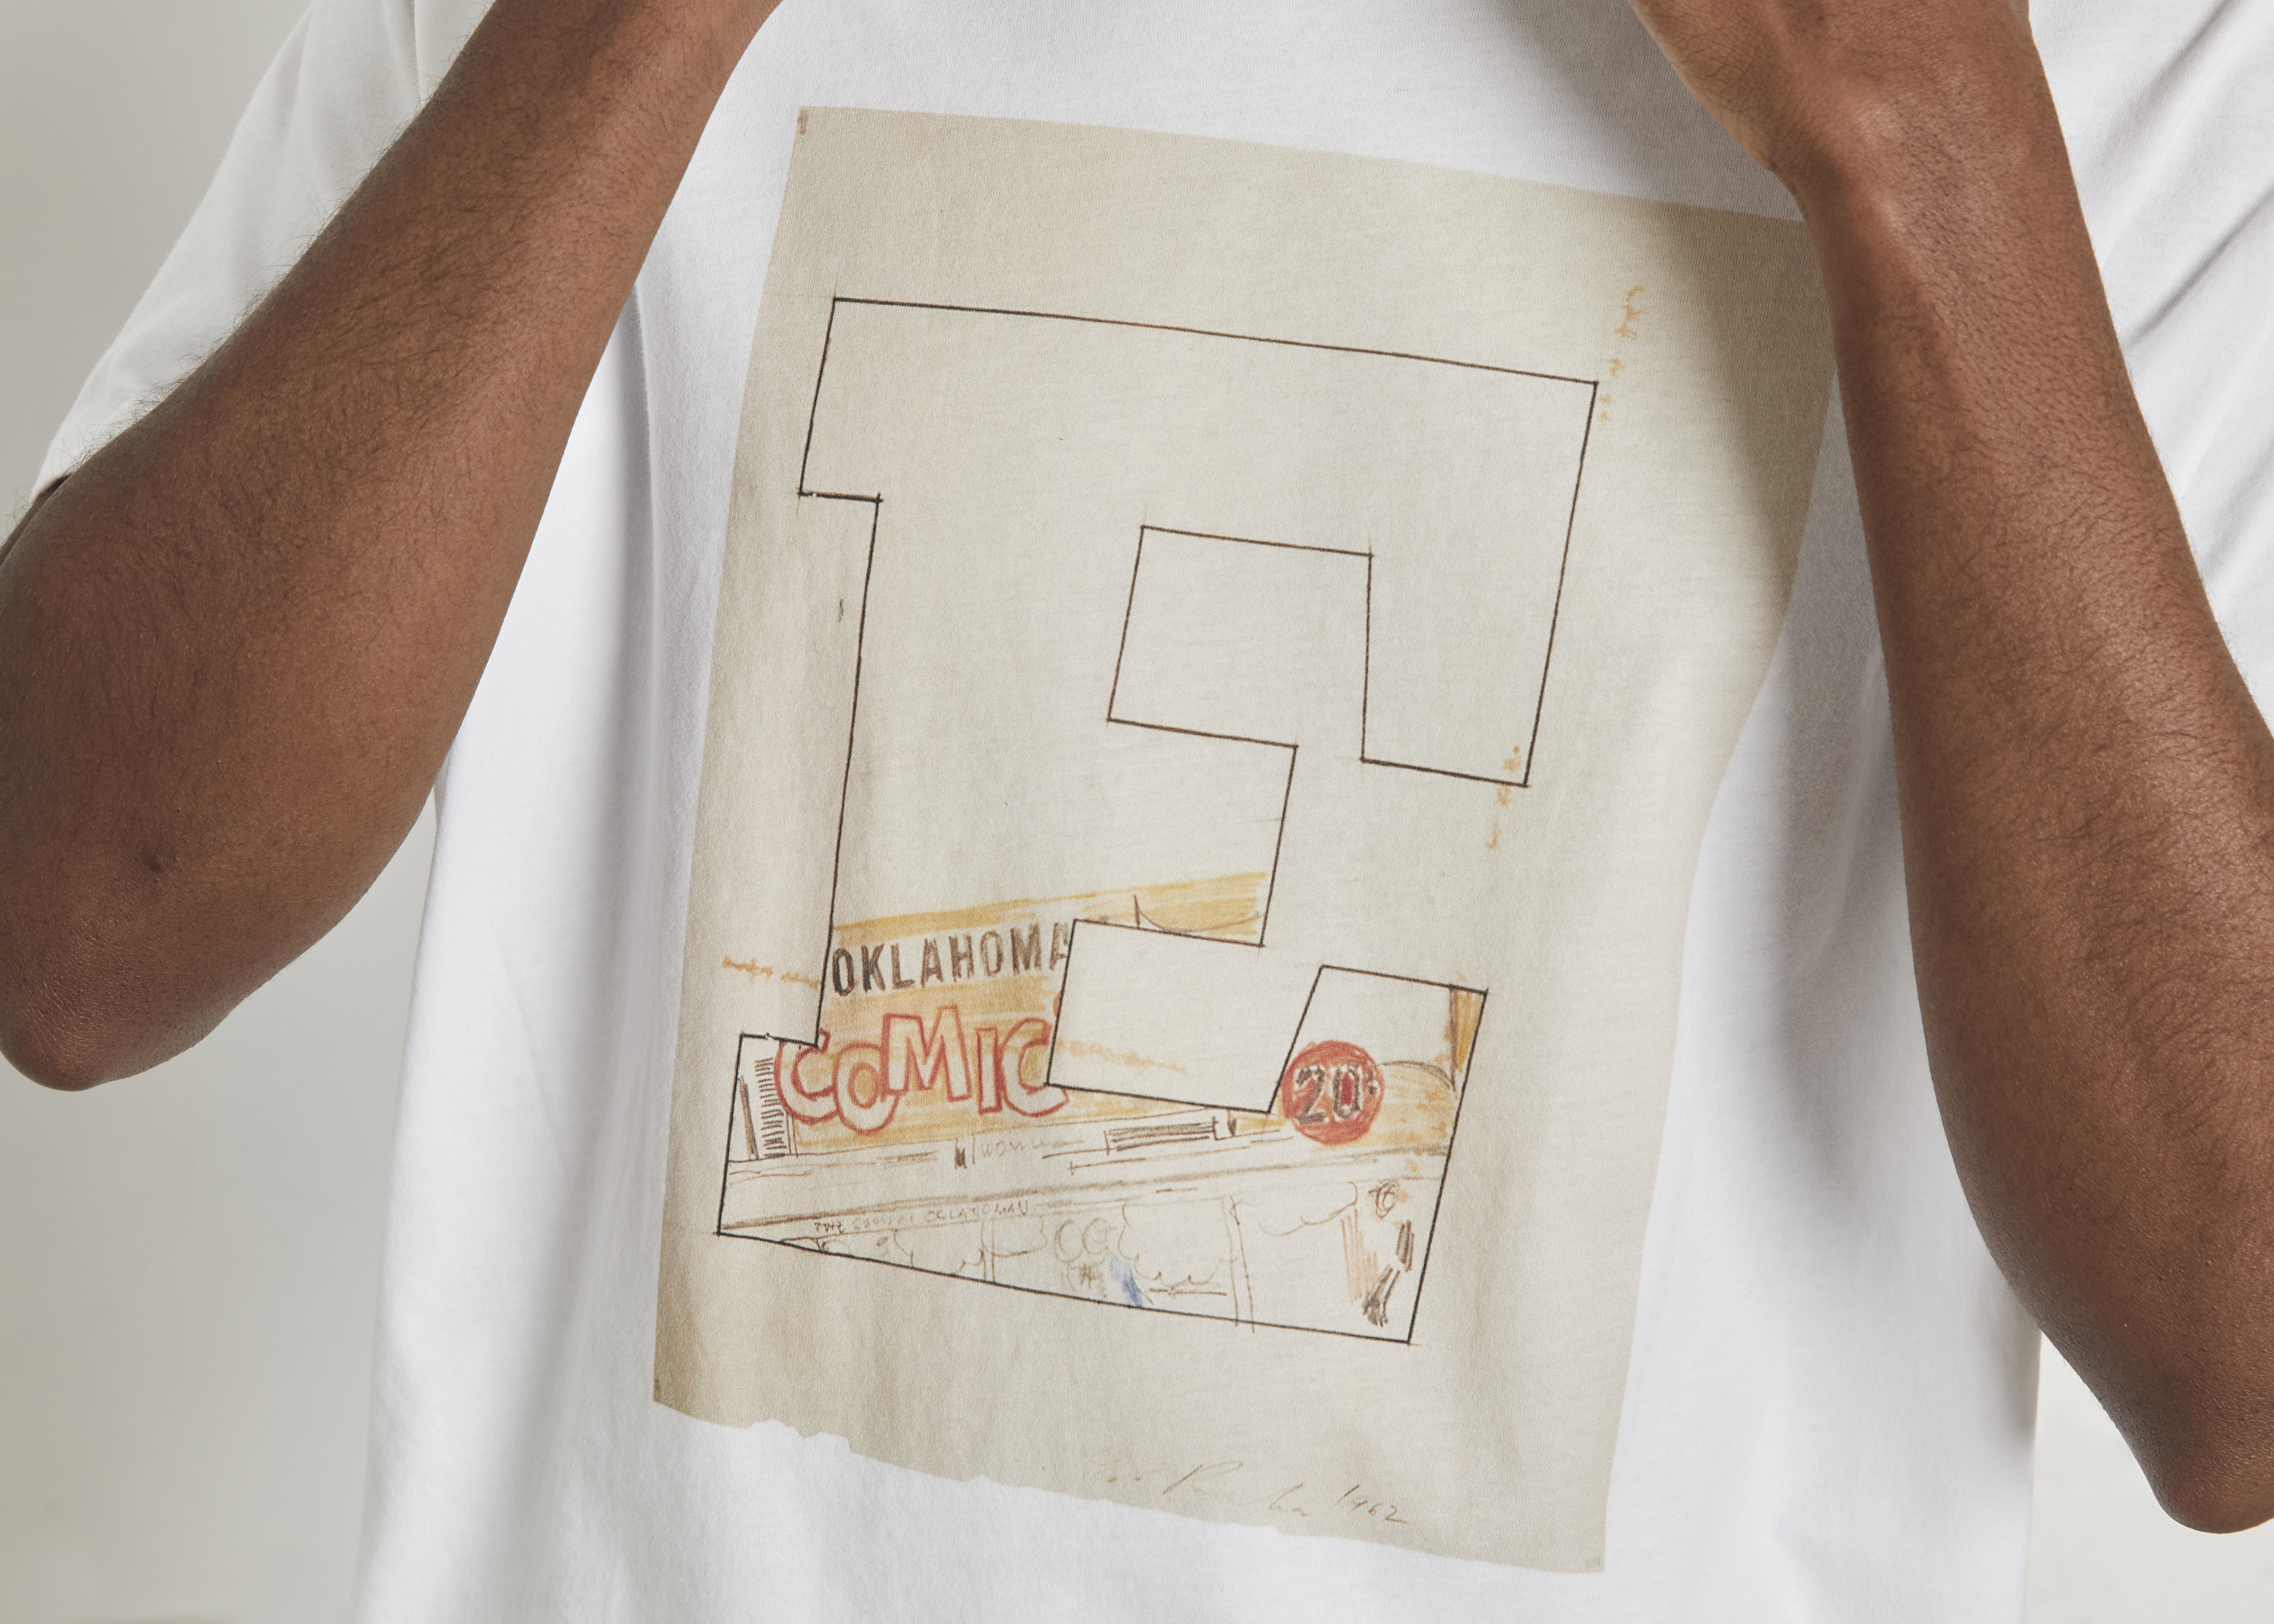 Cropped photo depicts a person wearing a white T-shirt emblazoned with a large letter E